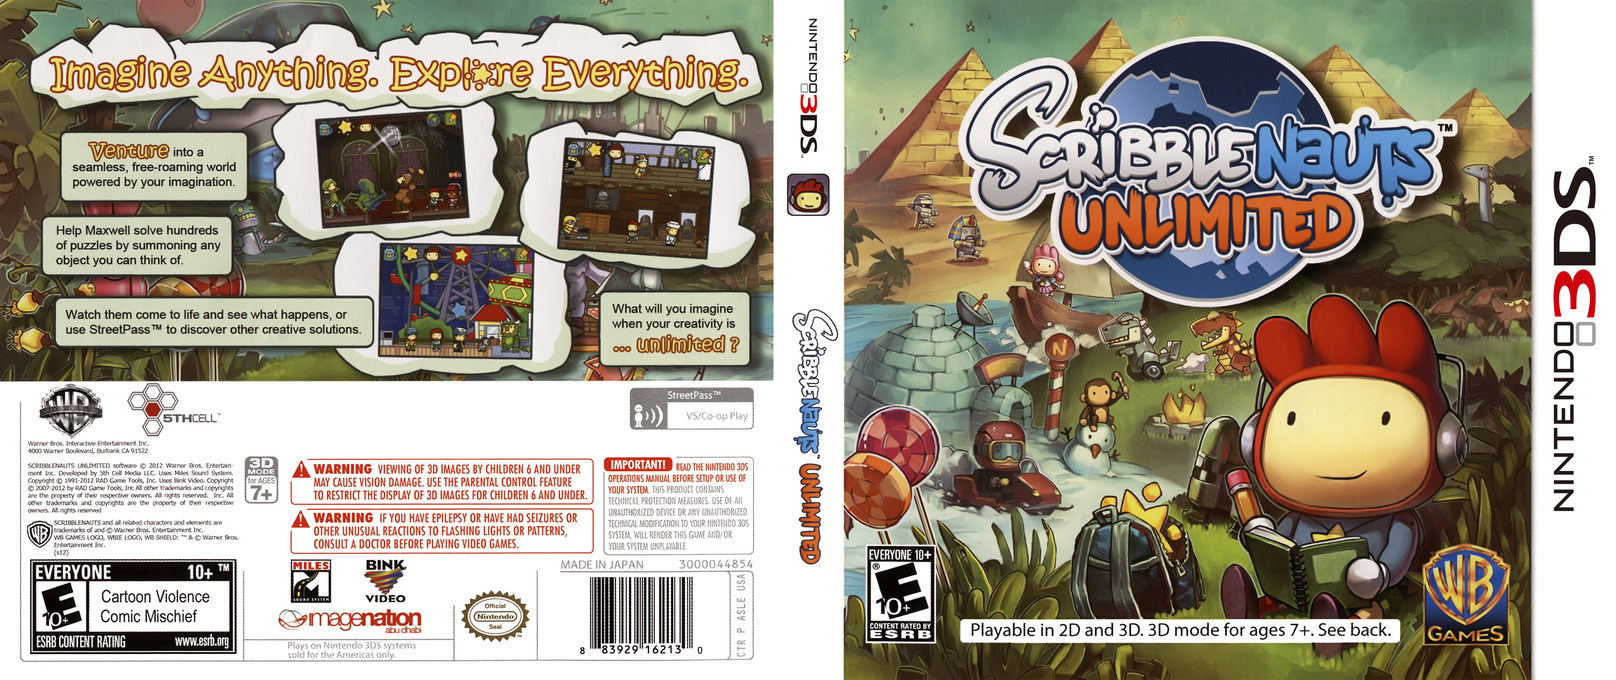 Scribblenauts Unlimited 3DS coverfullHQ (ASLE)